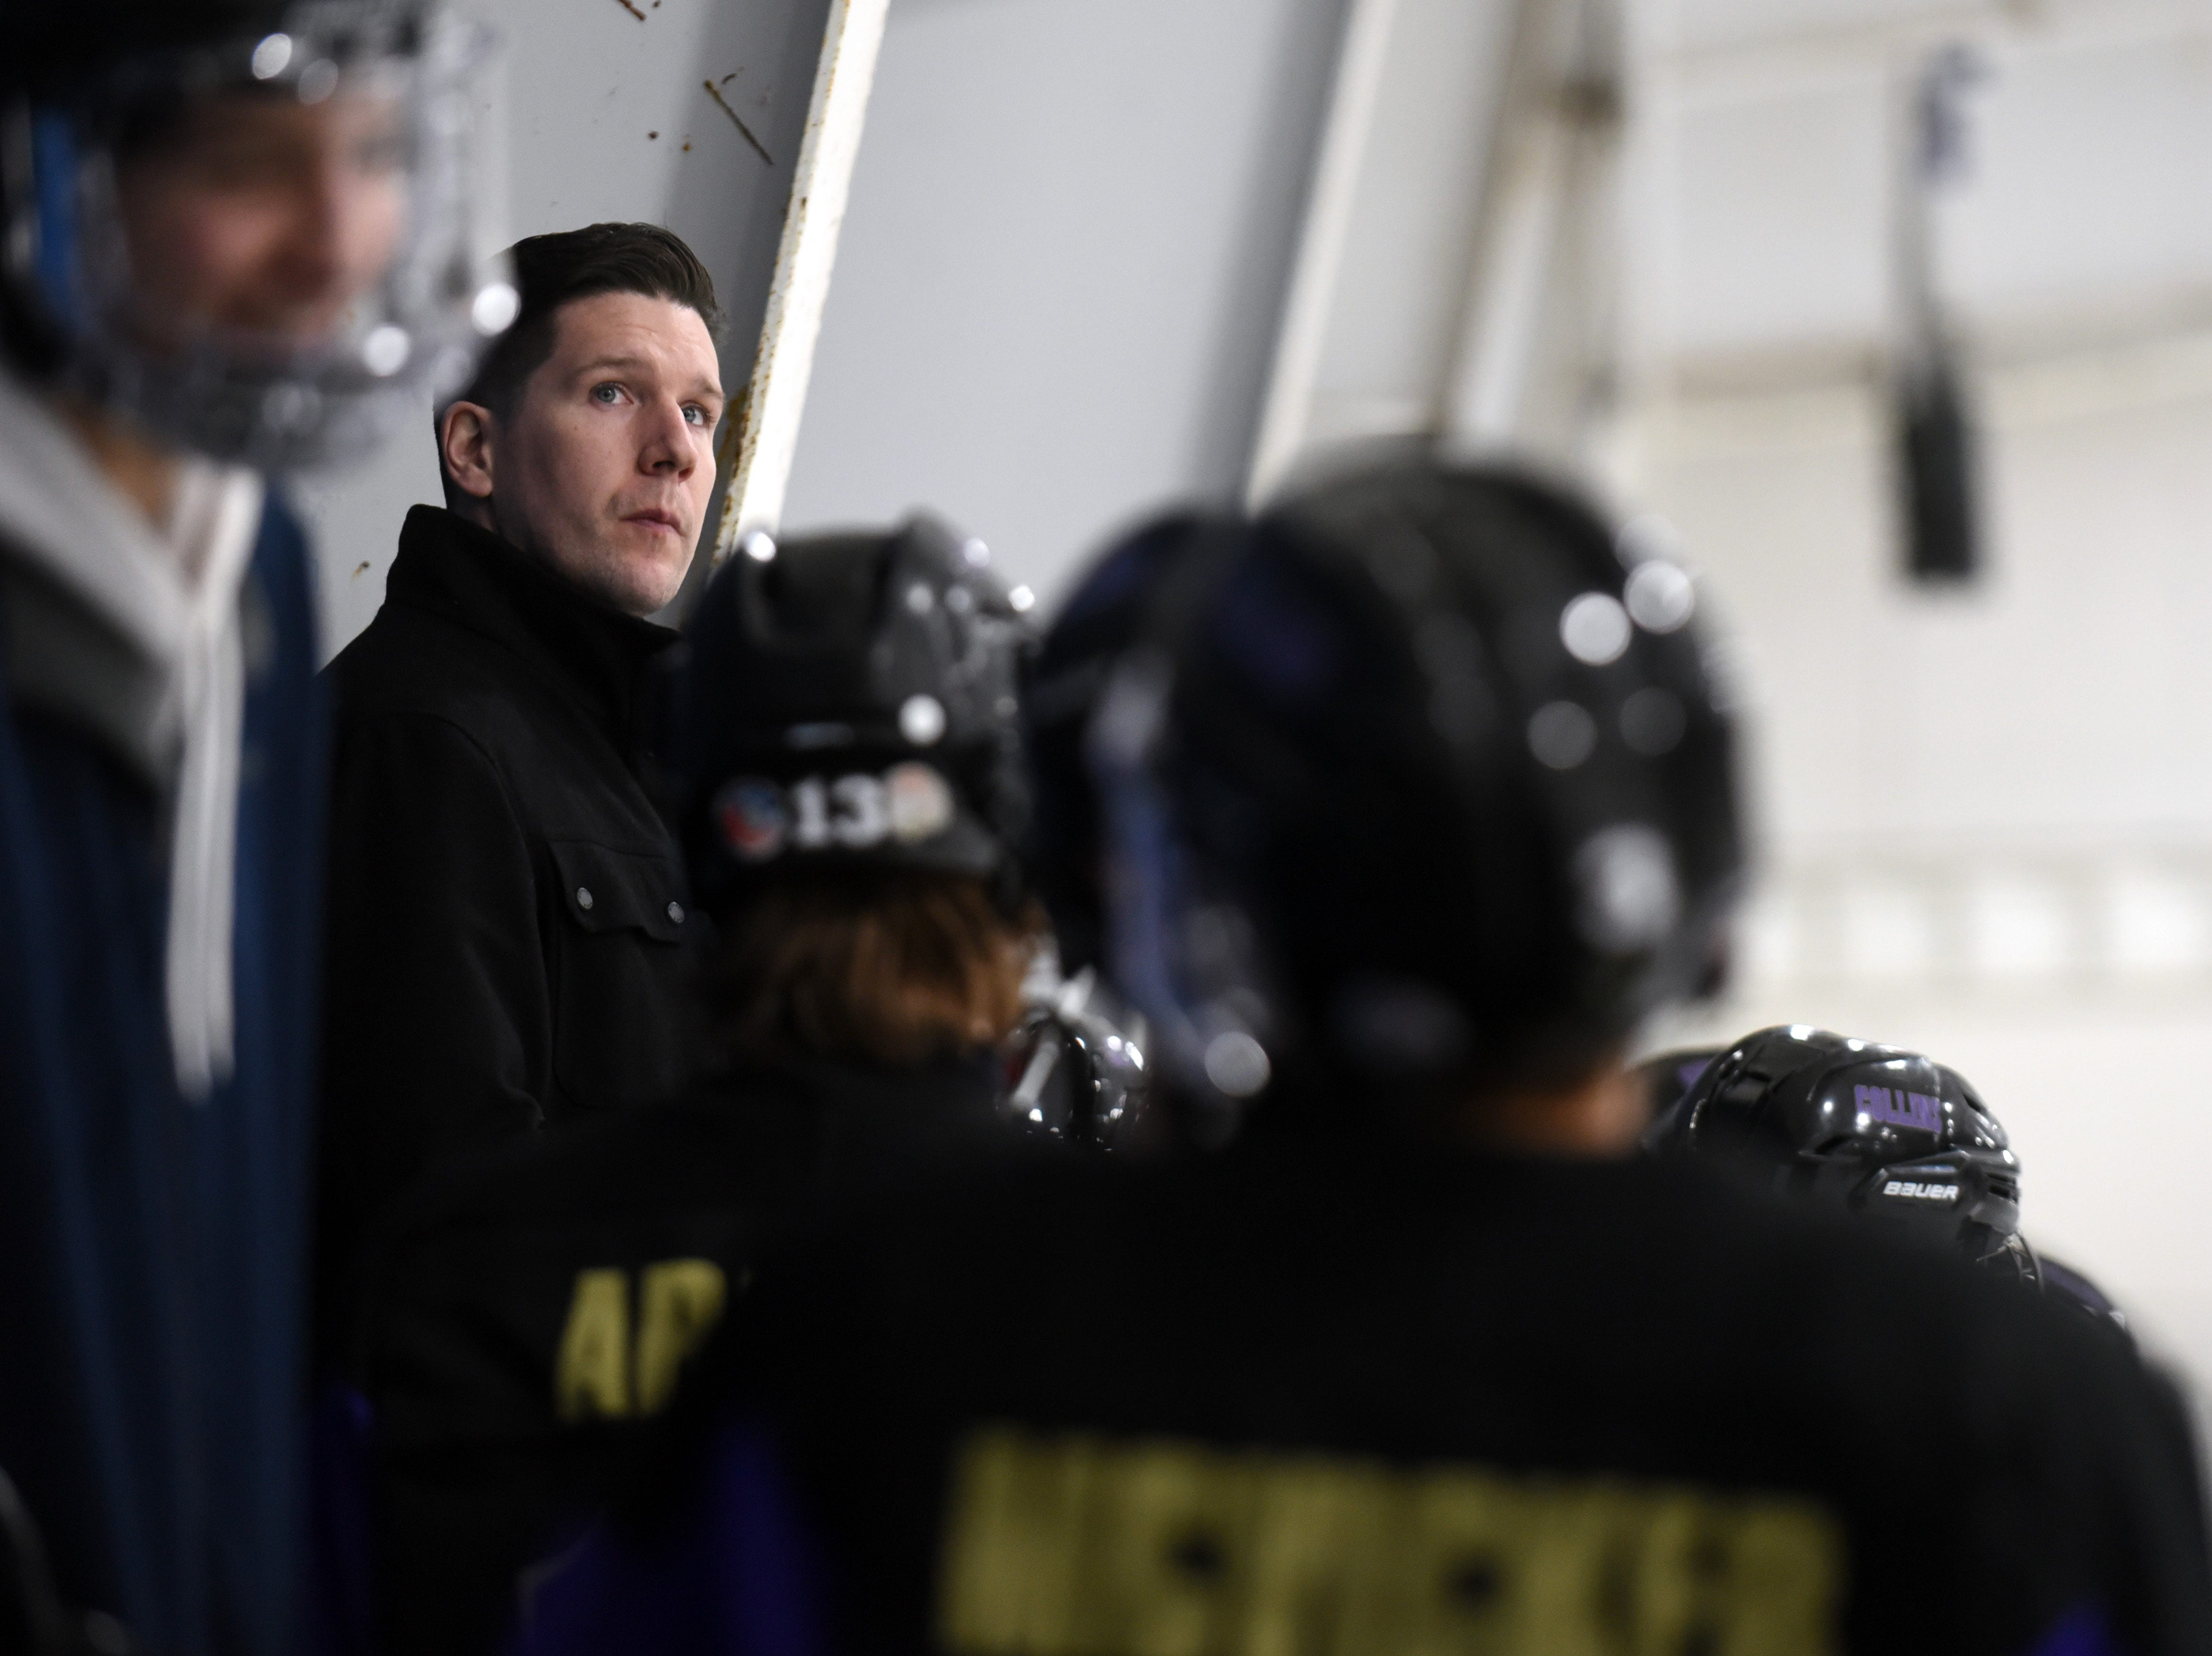 Fort Collins coach Dylan Strom looks up at the score board as he sits stands with his players during the game on Saturday, Feb 2, at NoCo Ice Center, 7900 N Fairgrounds Ave, in Fort Collins.